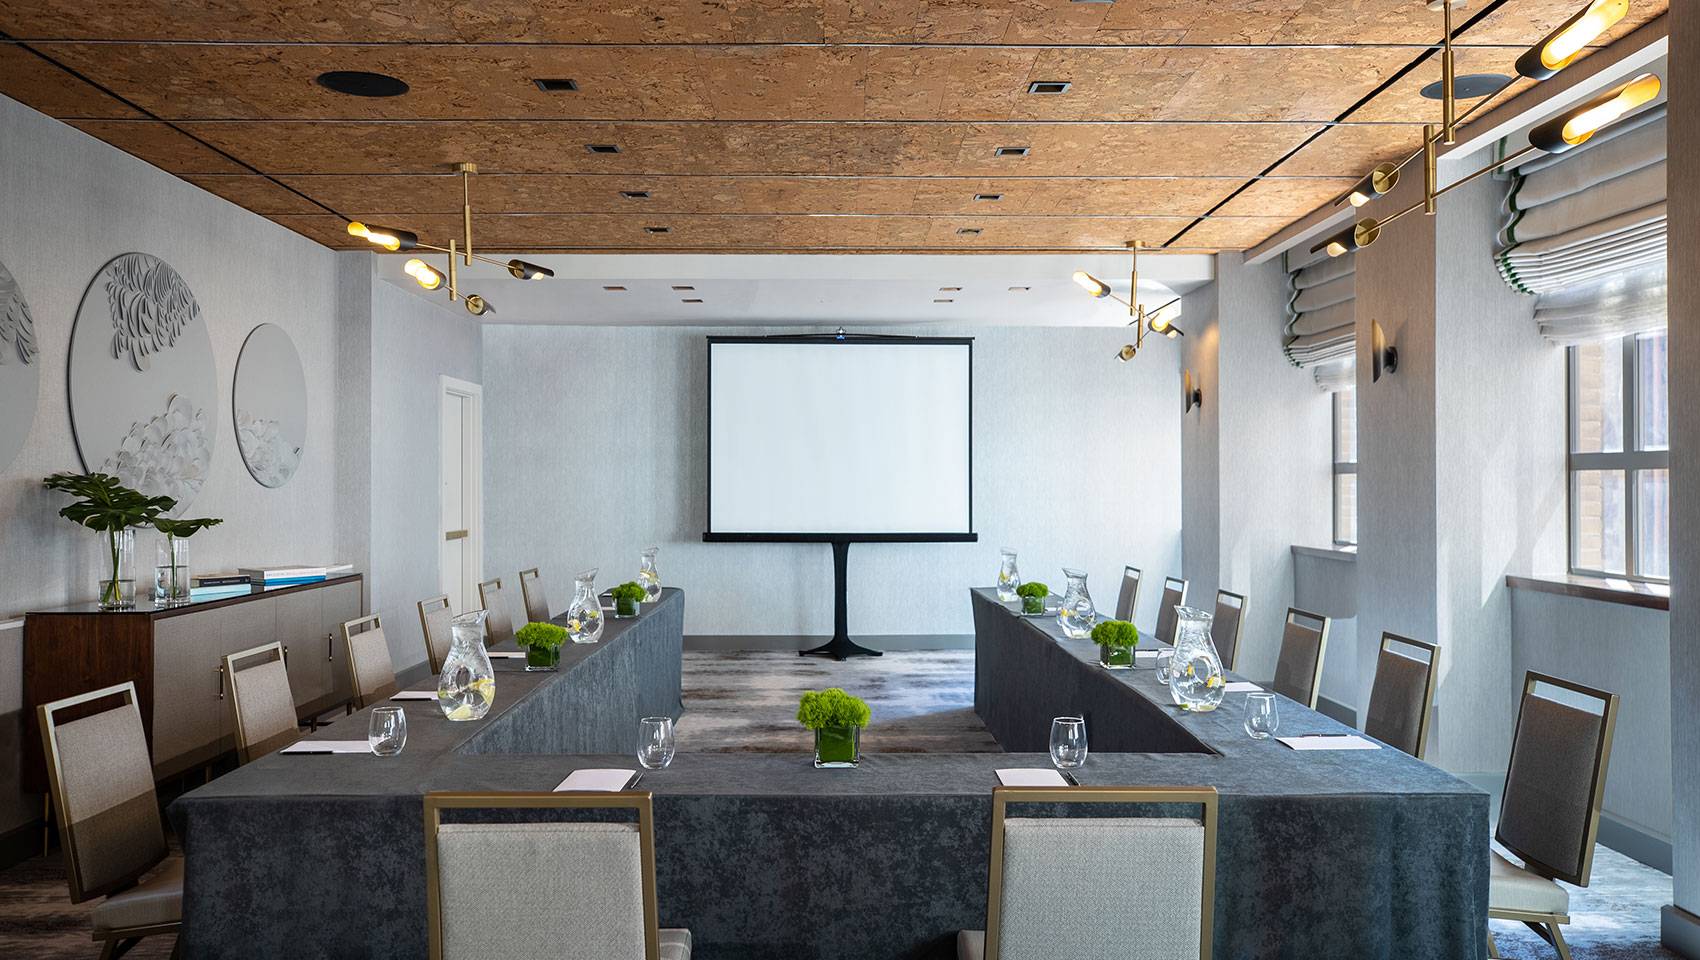 U-shape meeting set up in Tyng room located in Kimpton Hotel Palomar Philadelphia with tables set up in a U-shaped position and a presentation screen towards the back of the room in the center